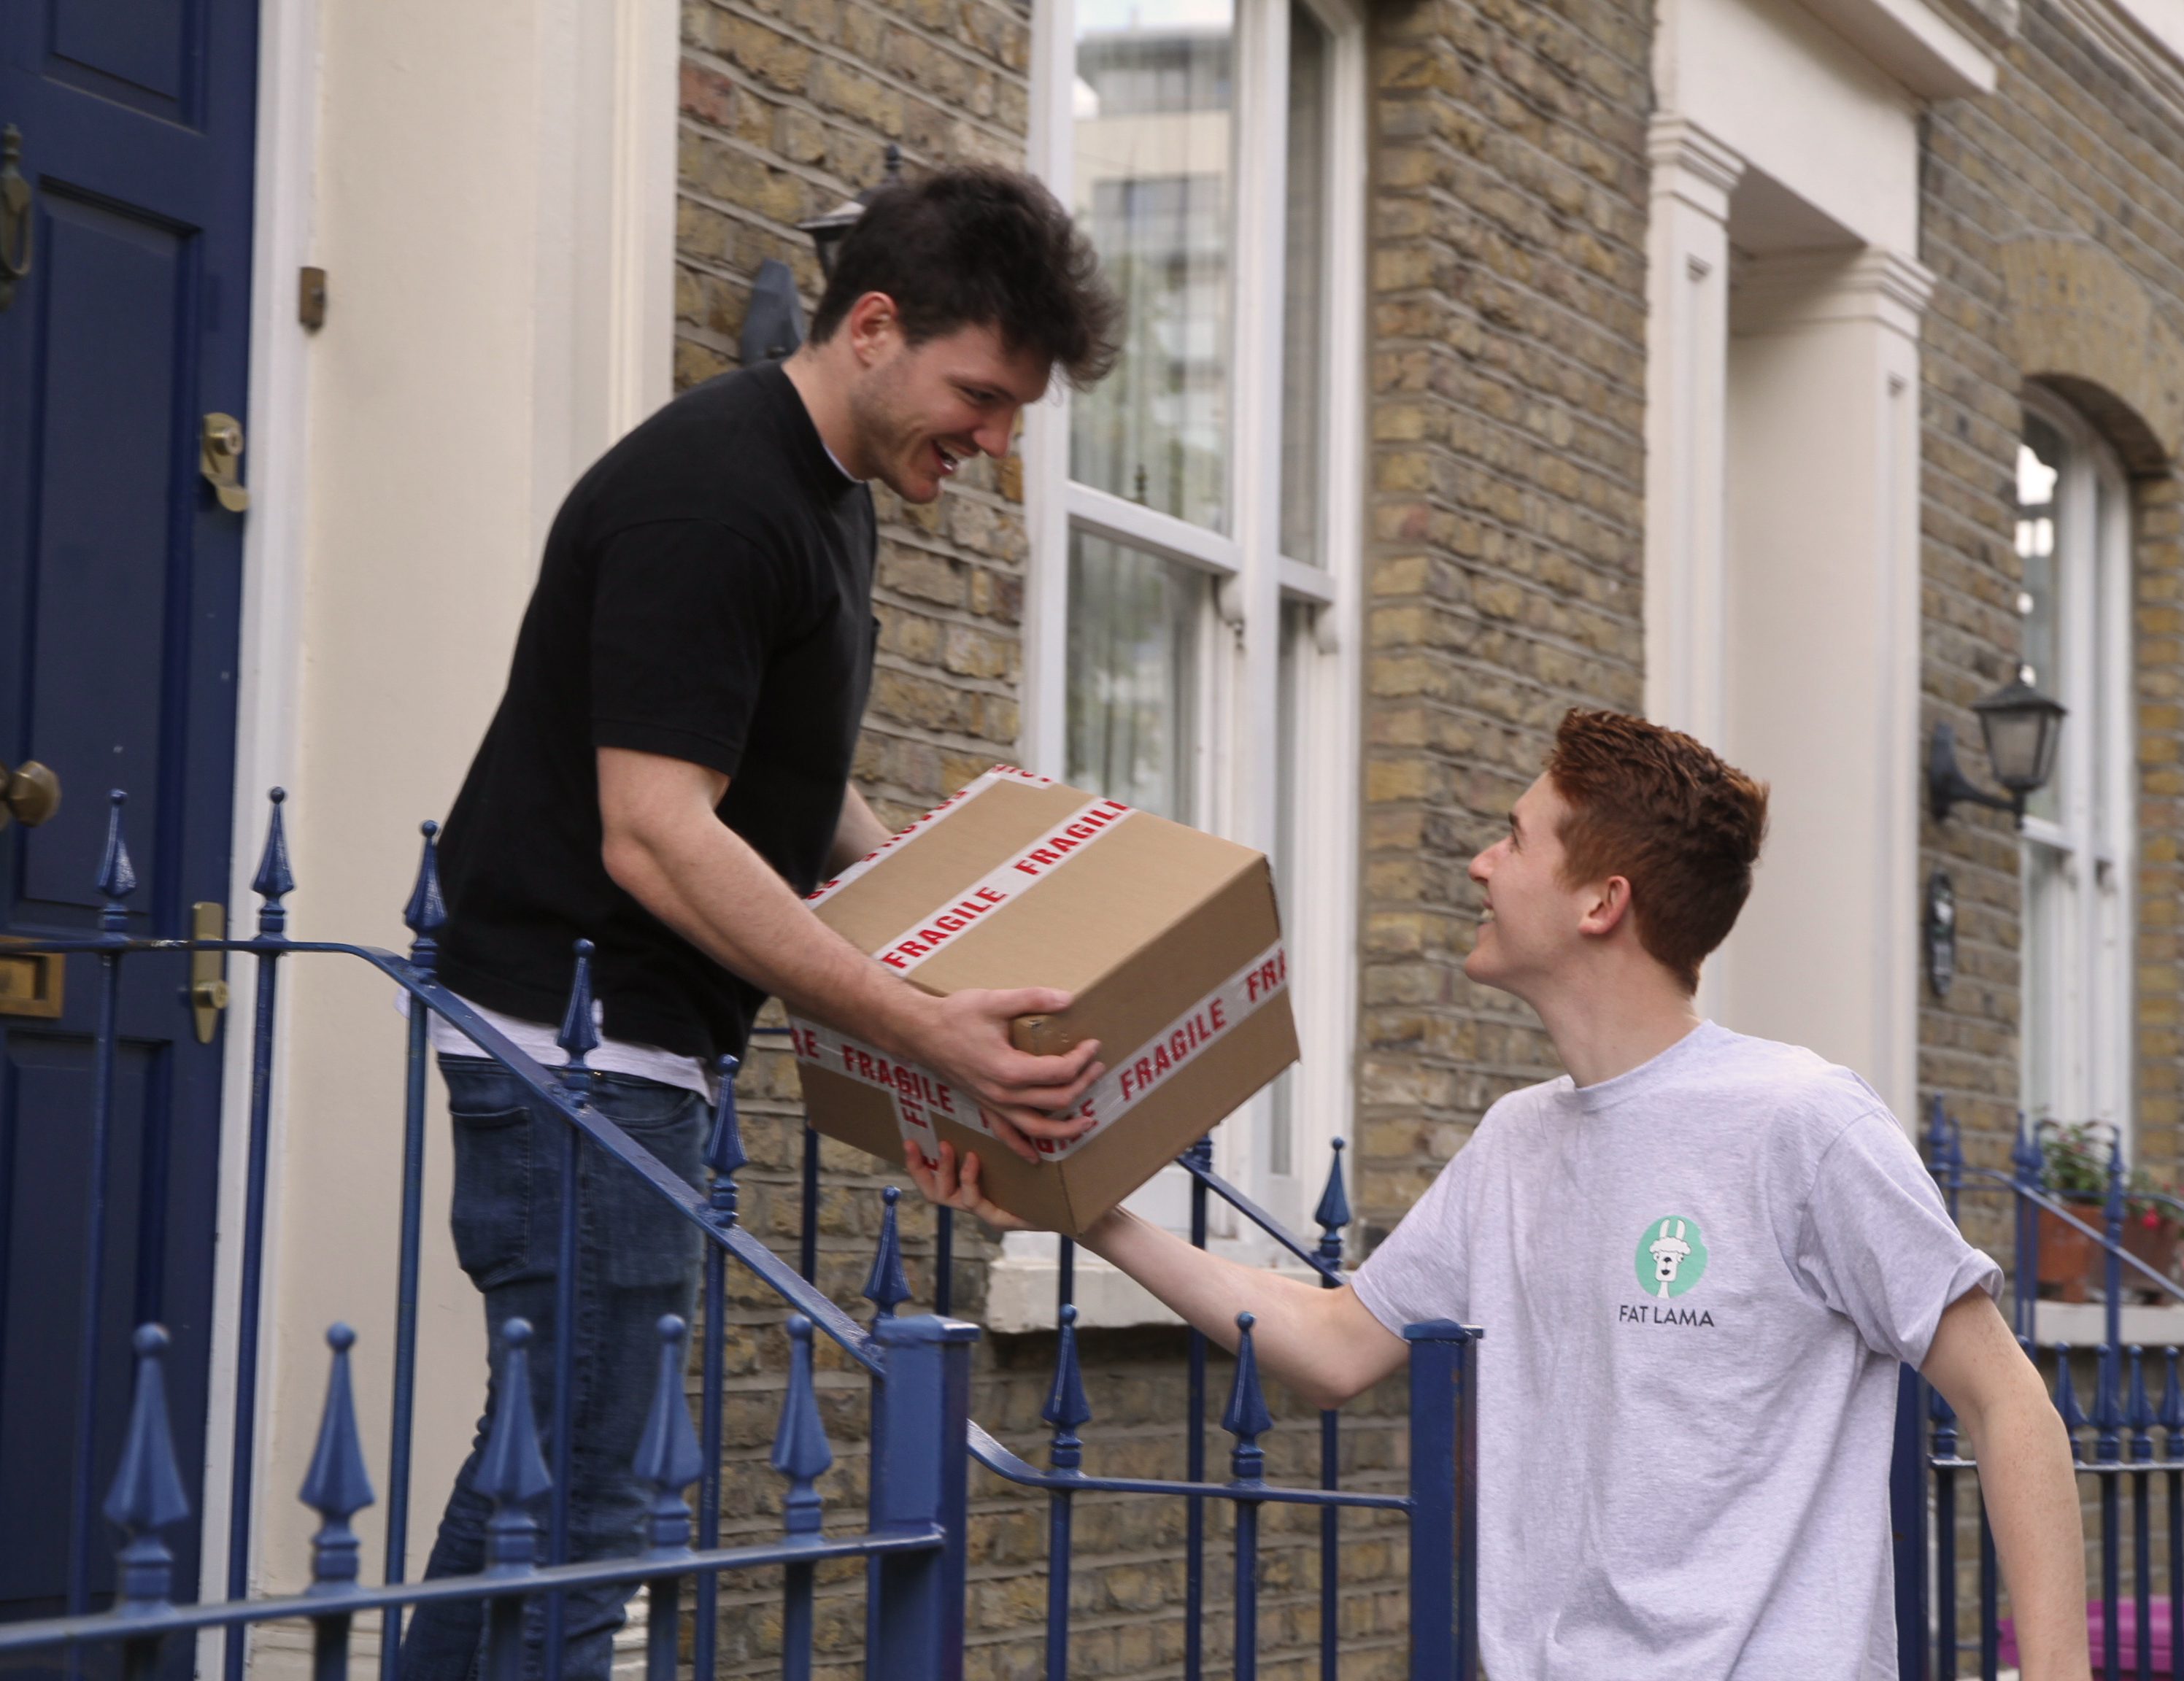 Peer-to-peer delivery; the sharing economy in action